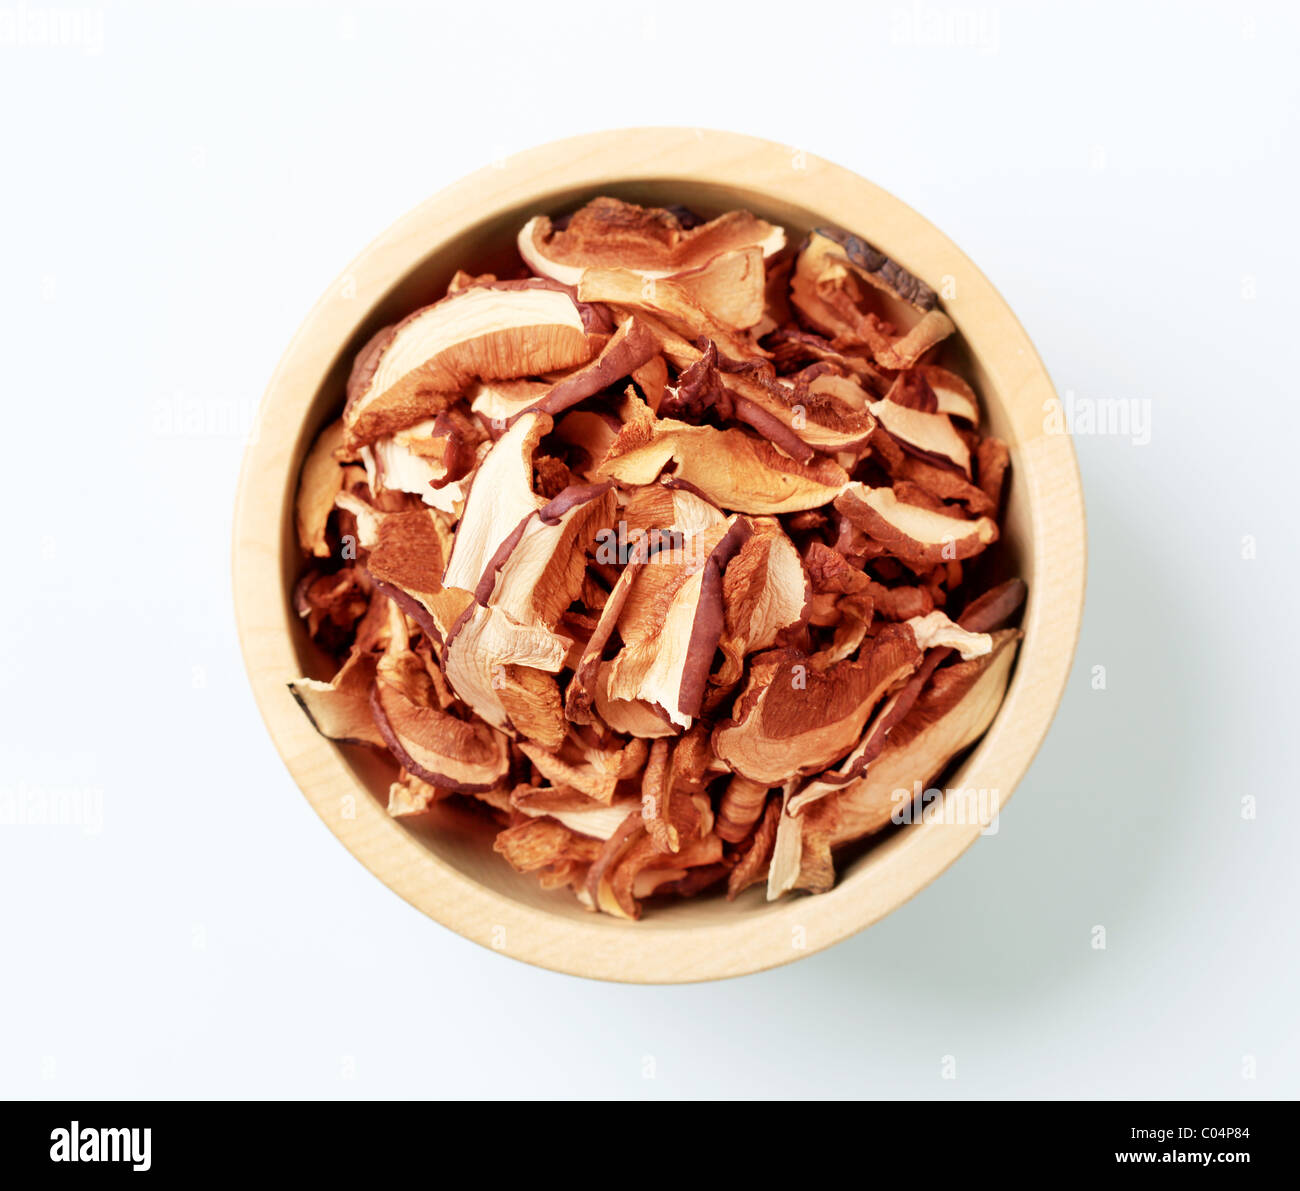 Bowl of dried mushrooms cut into slices - overhead - Stock Image